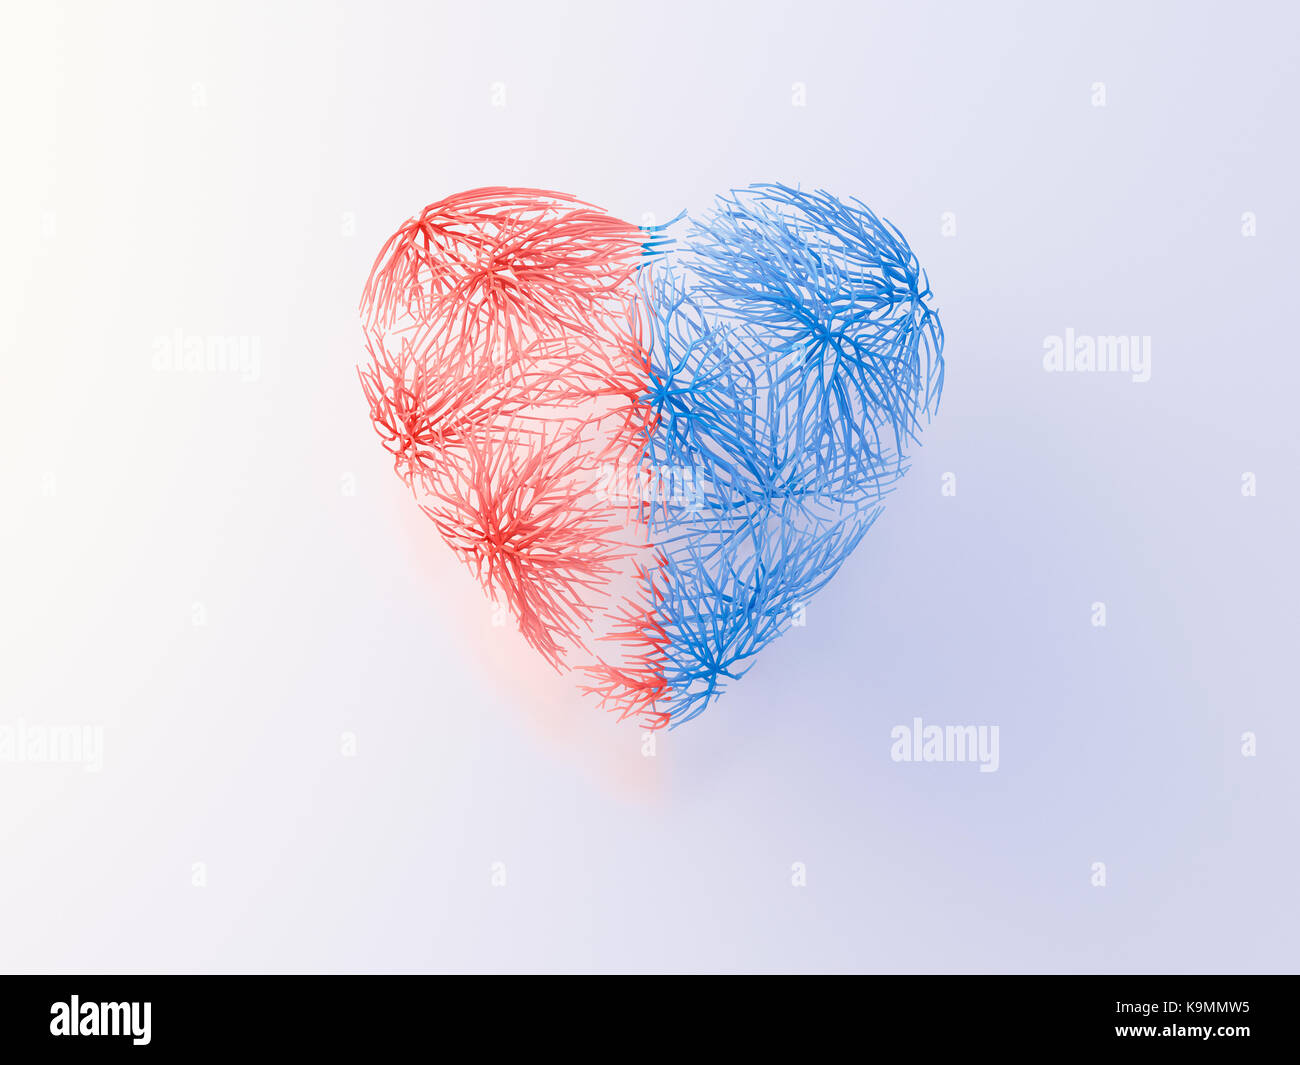 Heart with red and blue veins - Stock Image